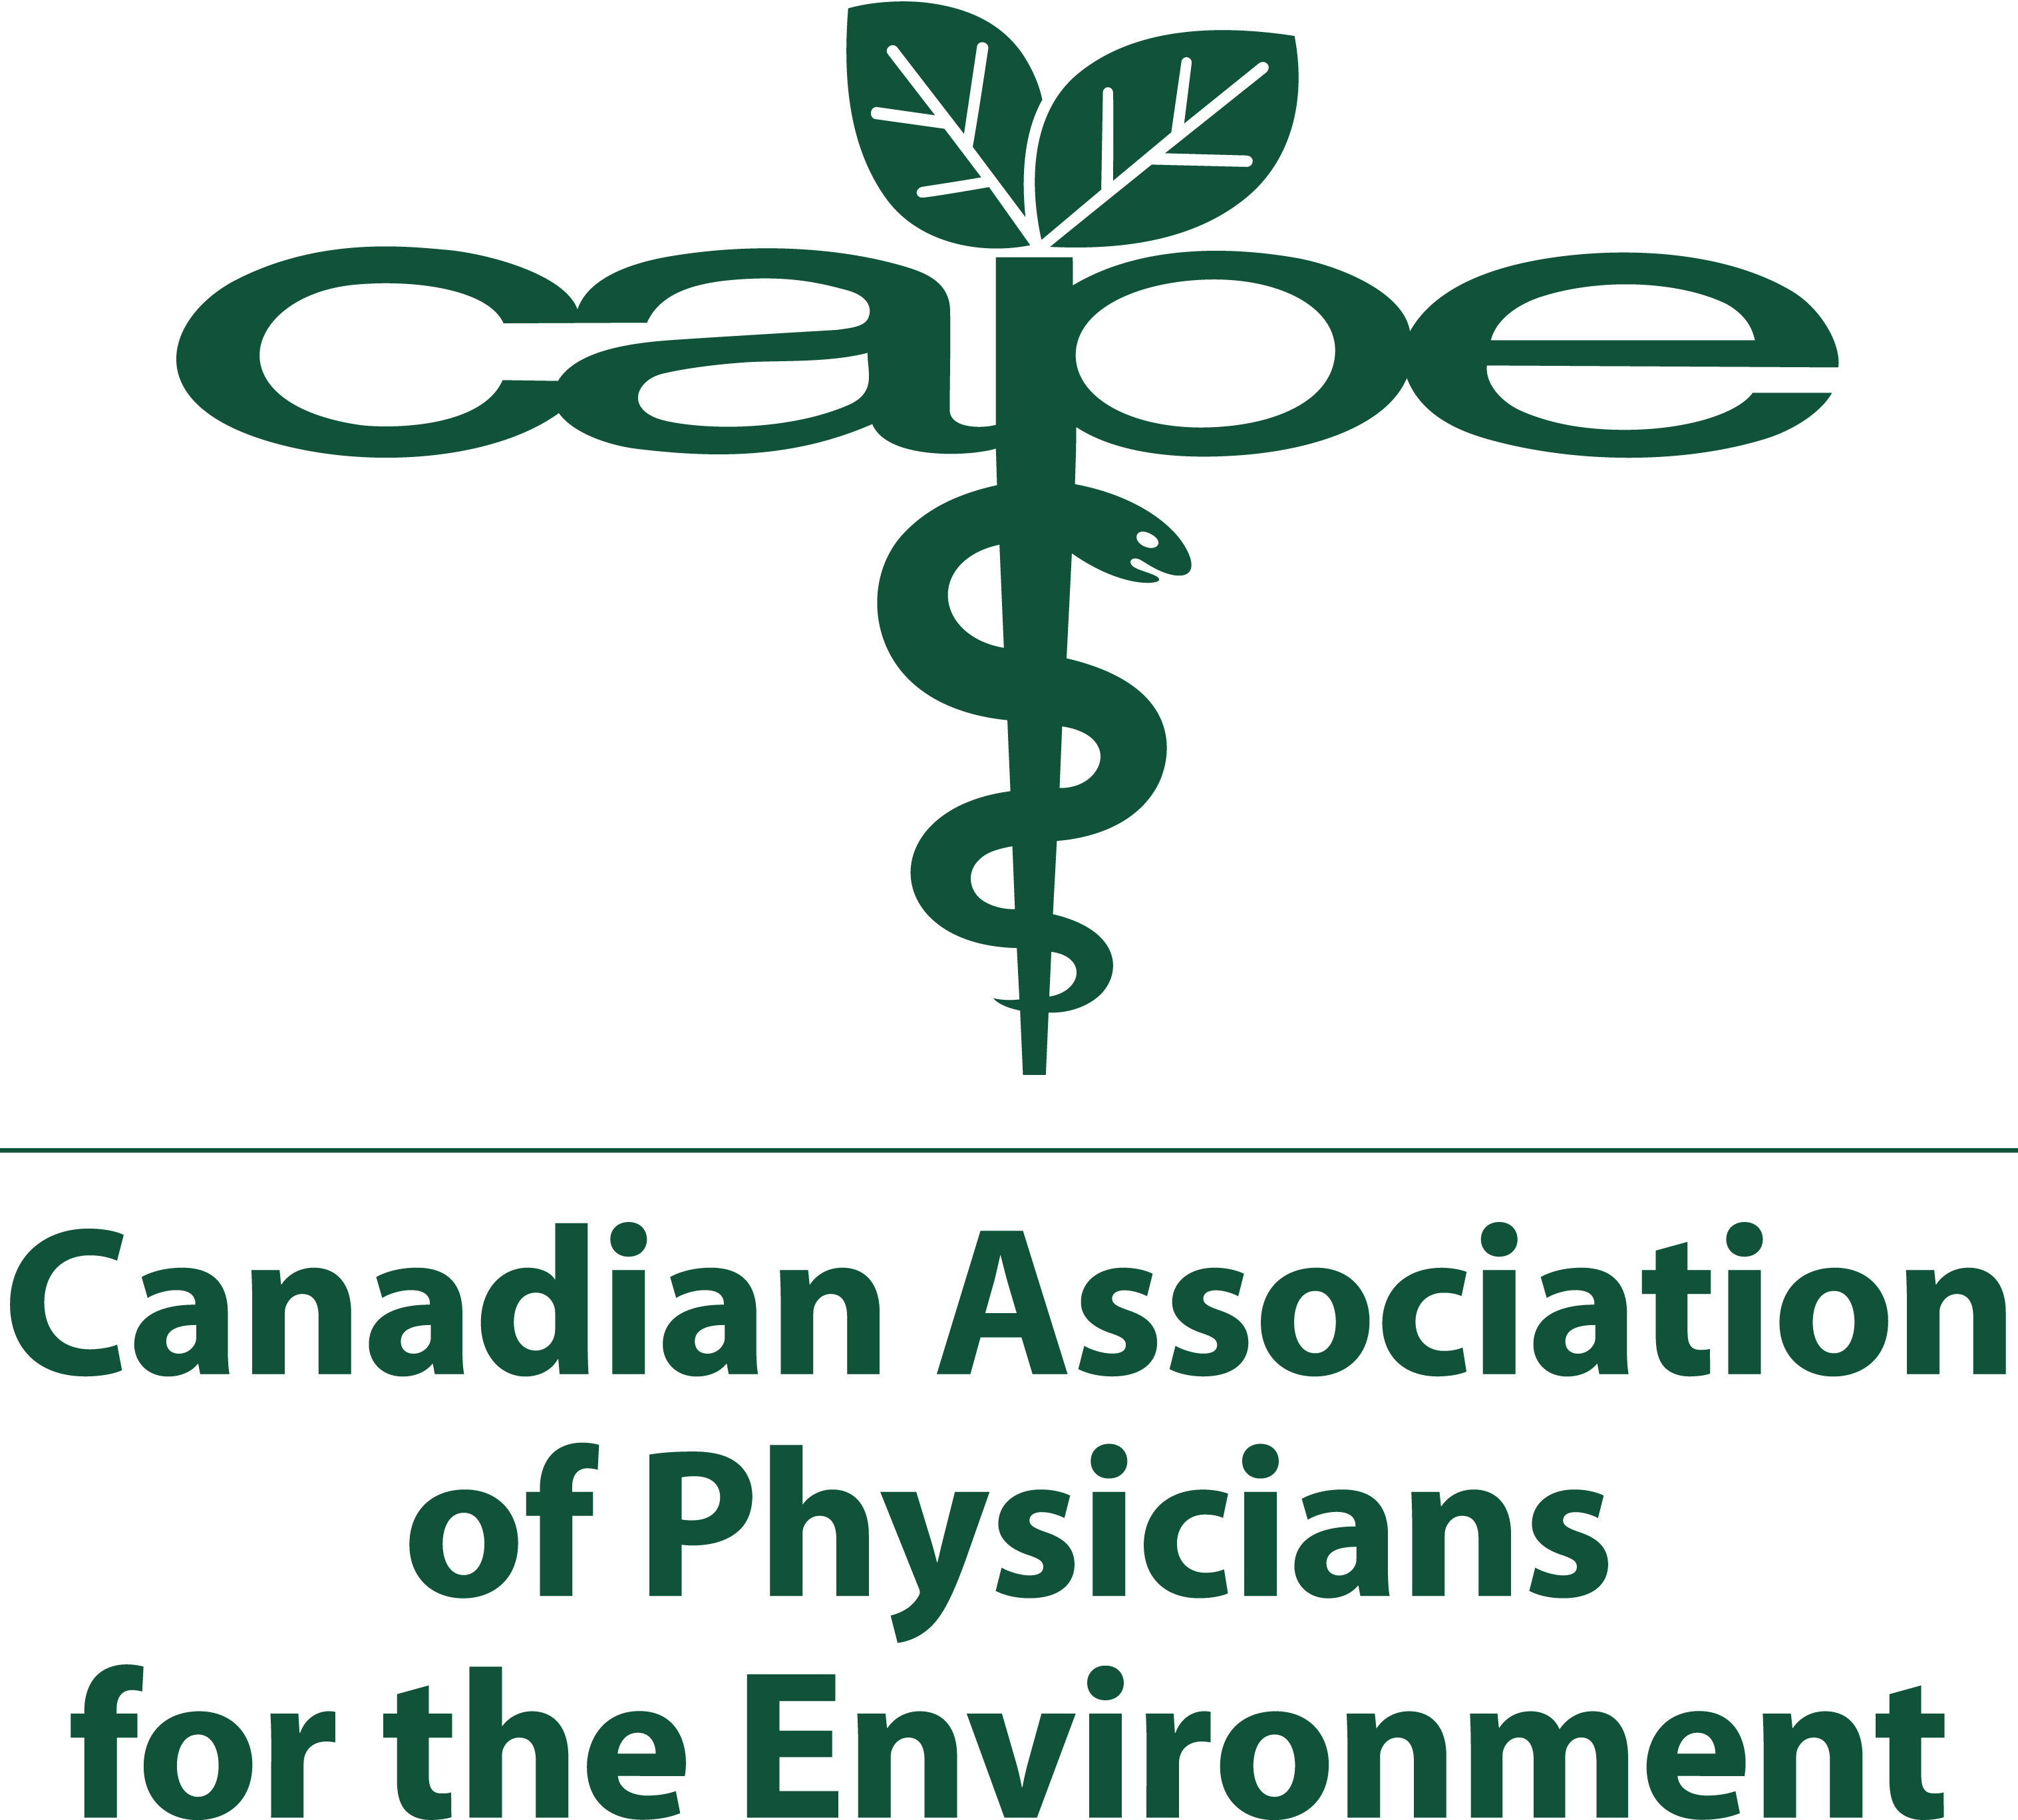 Canadian Association of Physicians for the Environment logo